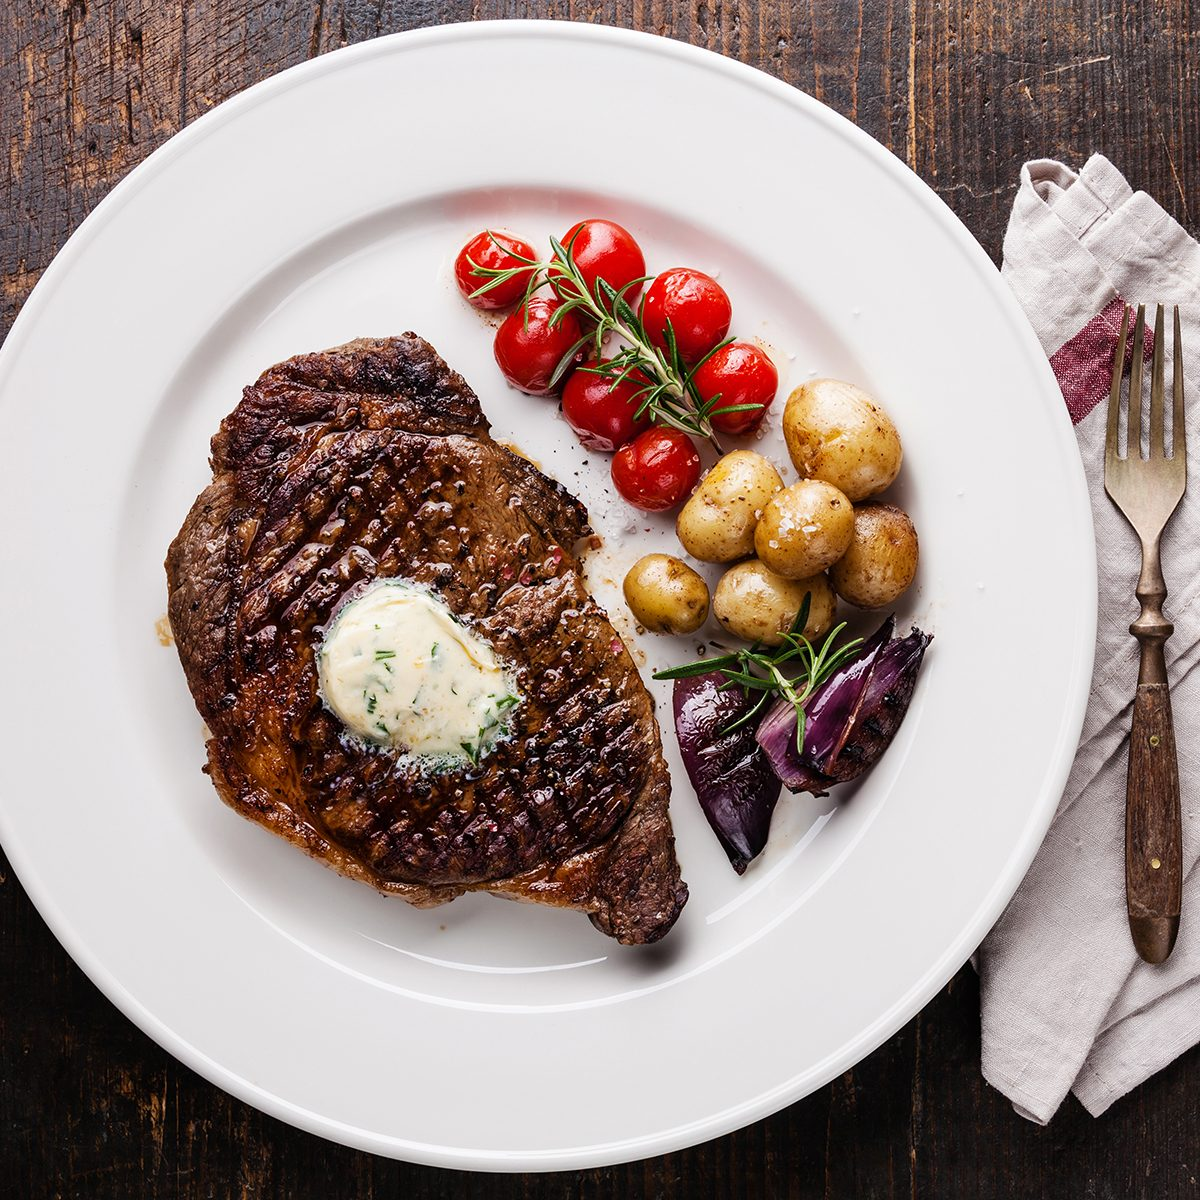 Grilled steak Ribeye with herb butter and baby potatoes on white plate on wooden background